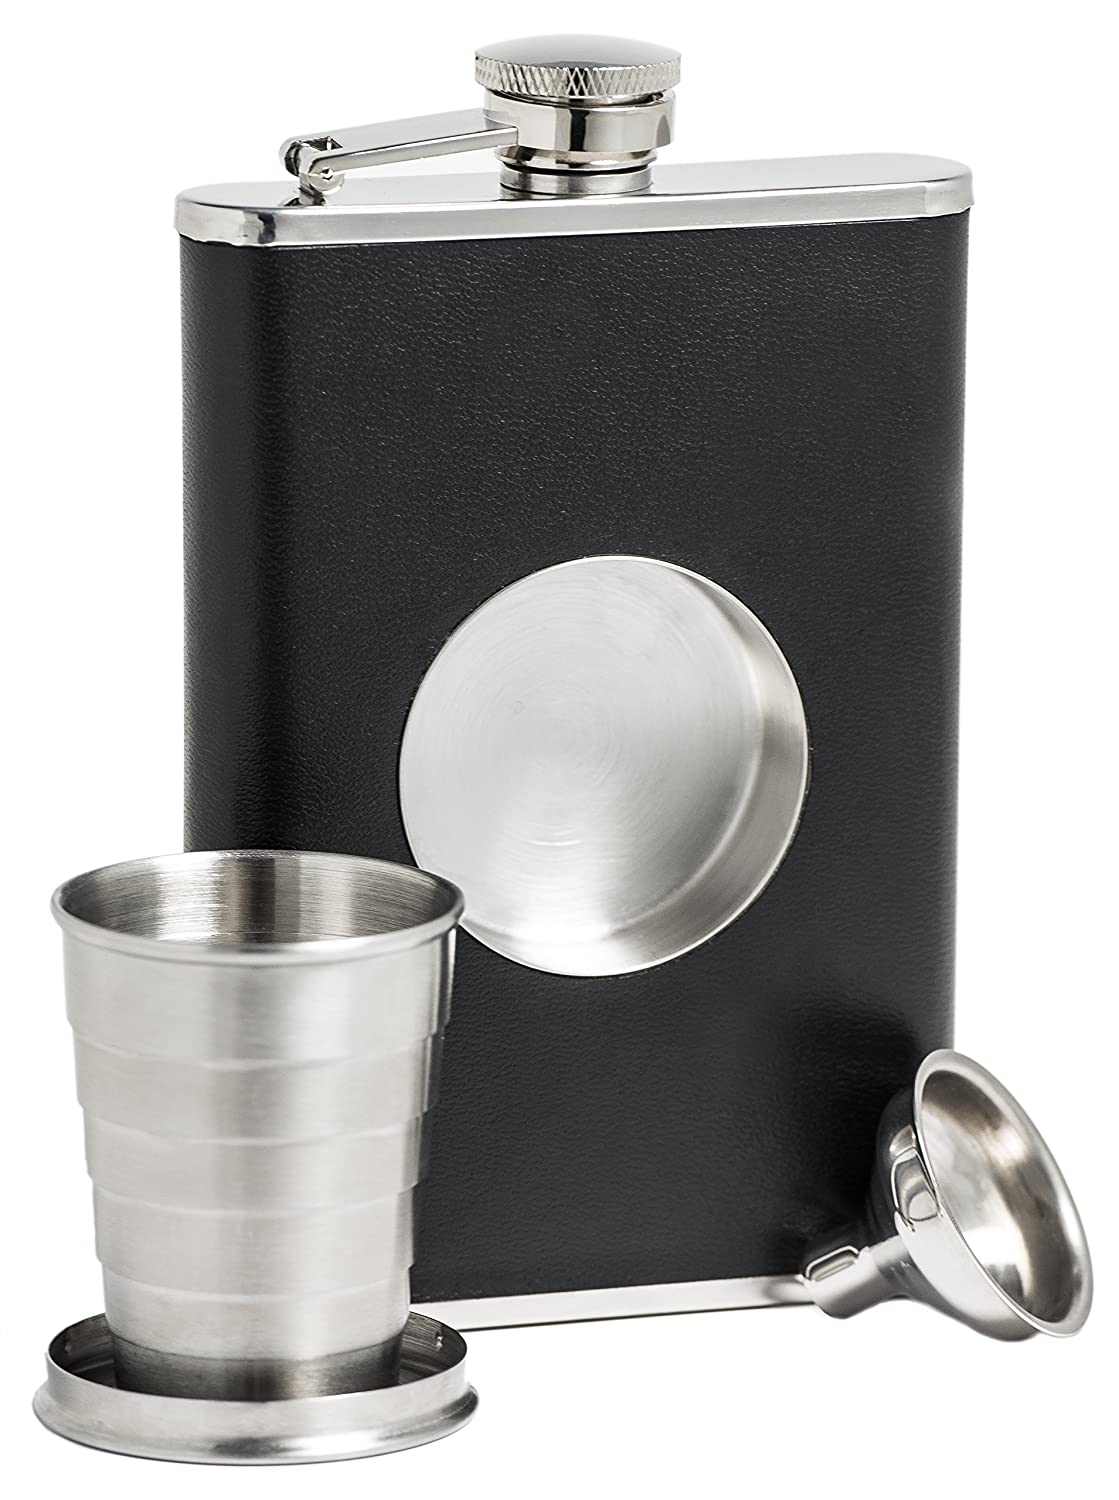 Shot Glass /& Flask Funnel Everything You Need to Pour Shots on the Go Shot Flask BarMe Brand NA Stainless Steel 8 oz Hip Flask Built-in Collapsible 2 Oz